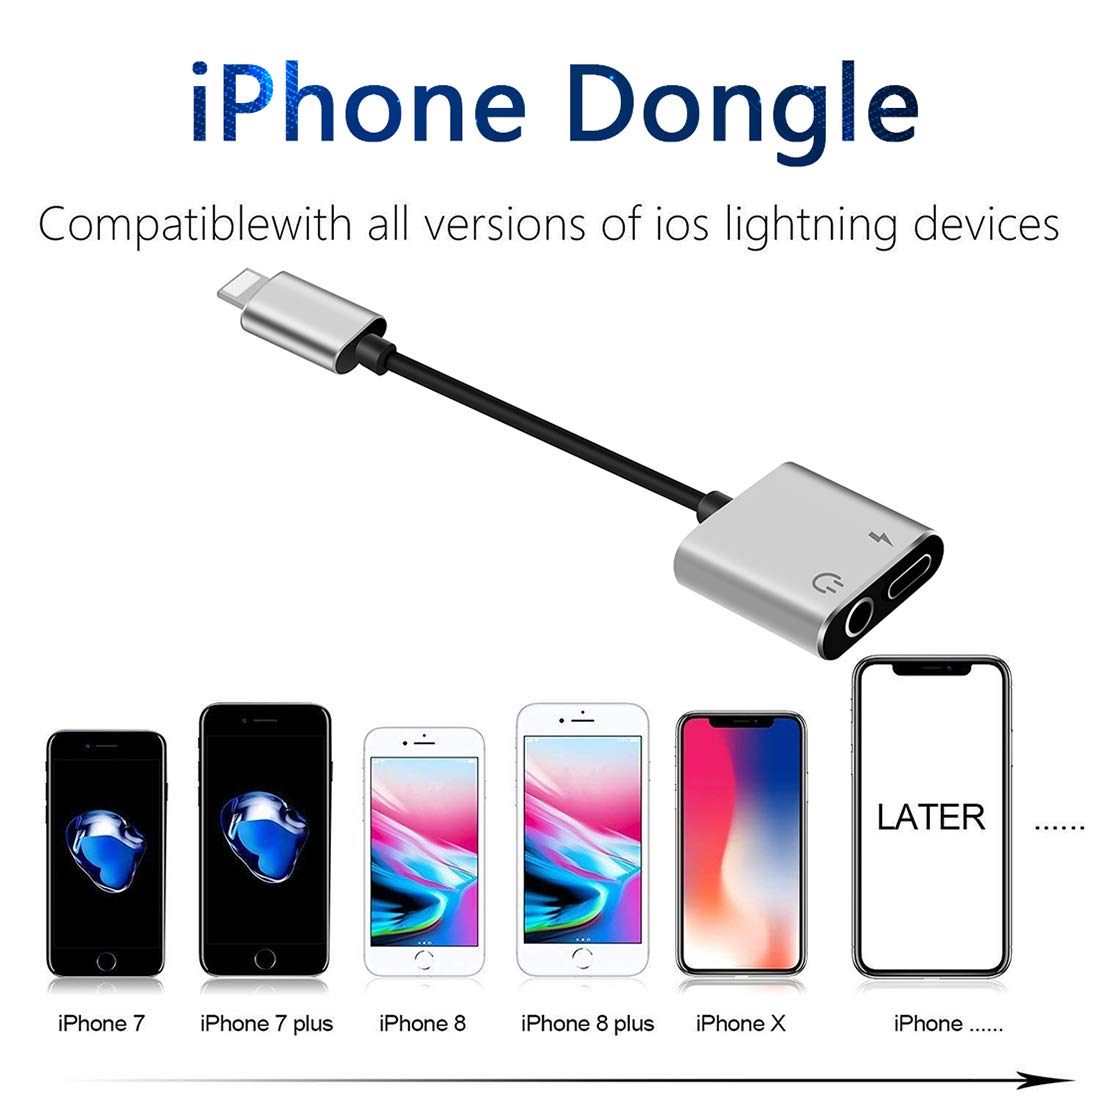 Headphone Jack Adapter Charger for Splitter Dongle Earphone Cable and Aux Audio Connector for iPhone X//Xs//XS max//8//8 Plus//7//7 Plus Adapter 2 in 1 Headphone for Music and Charge Support iOS10.3 More